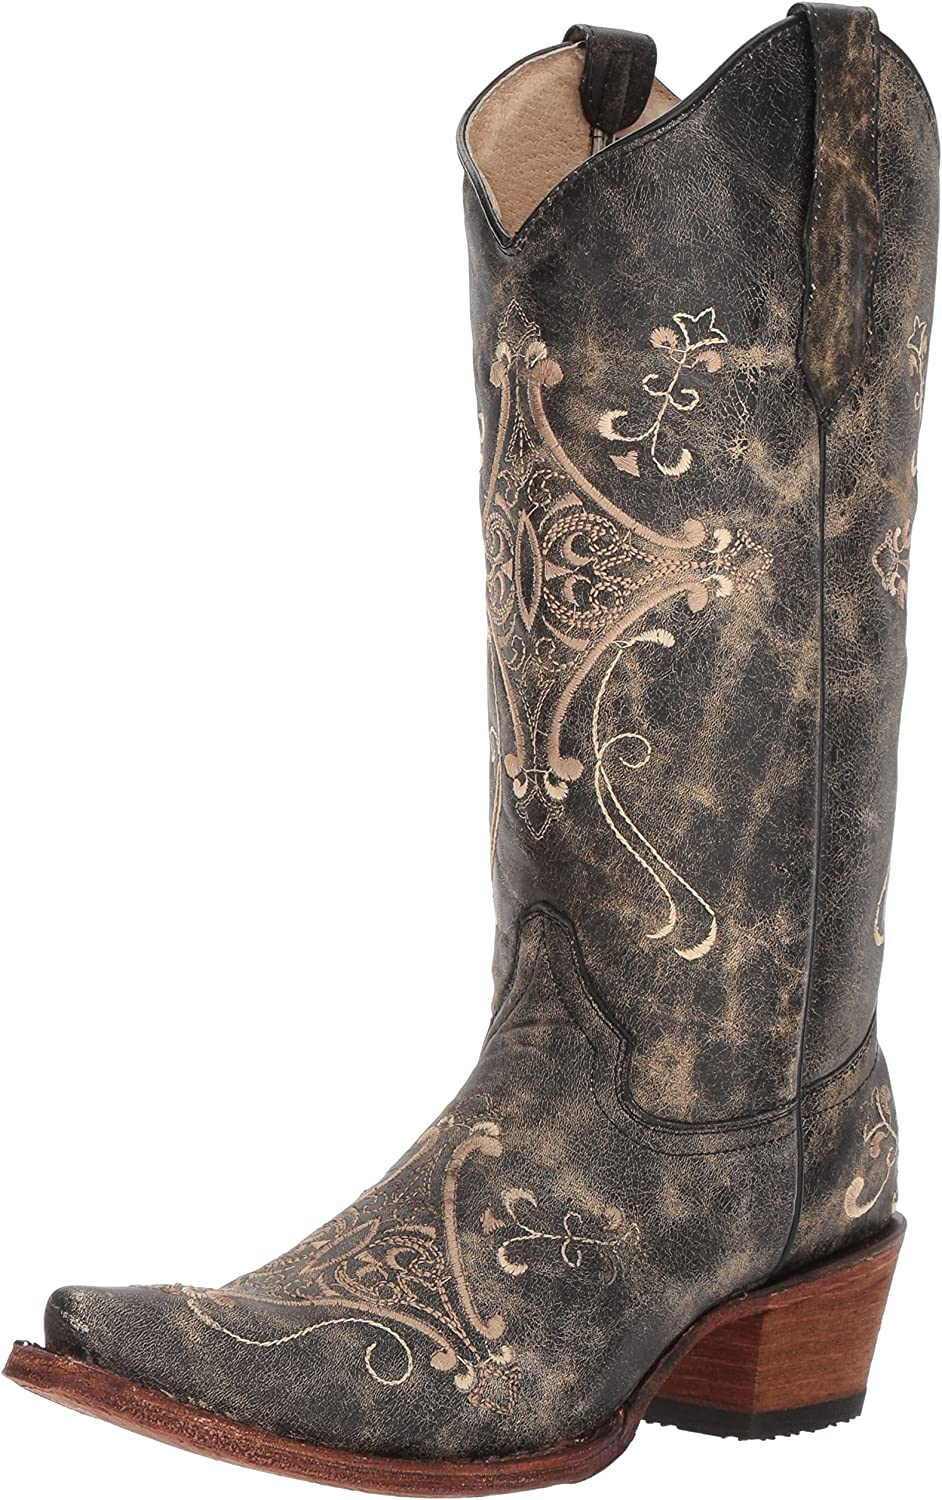 Corral service Womens Black National products Crackle Embroidery Size: Bone